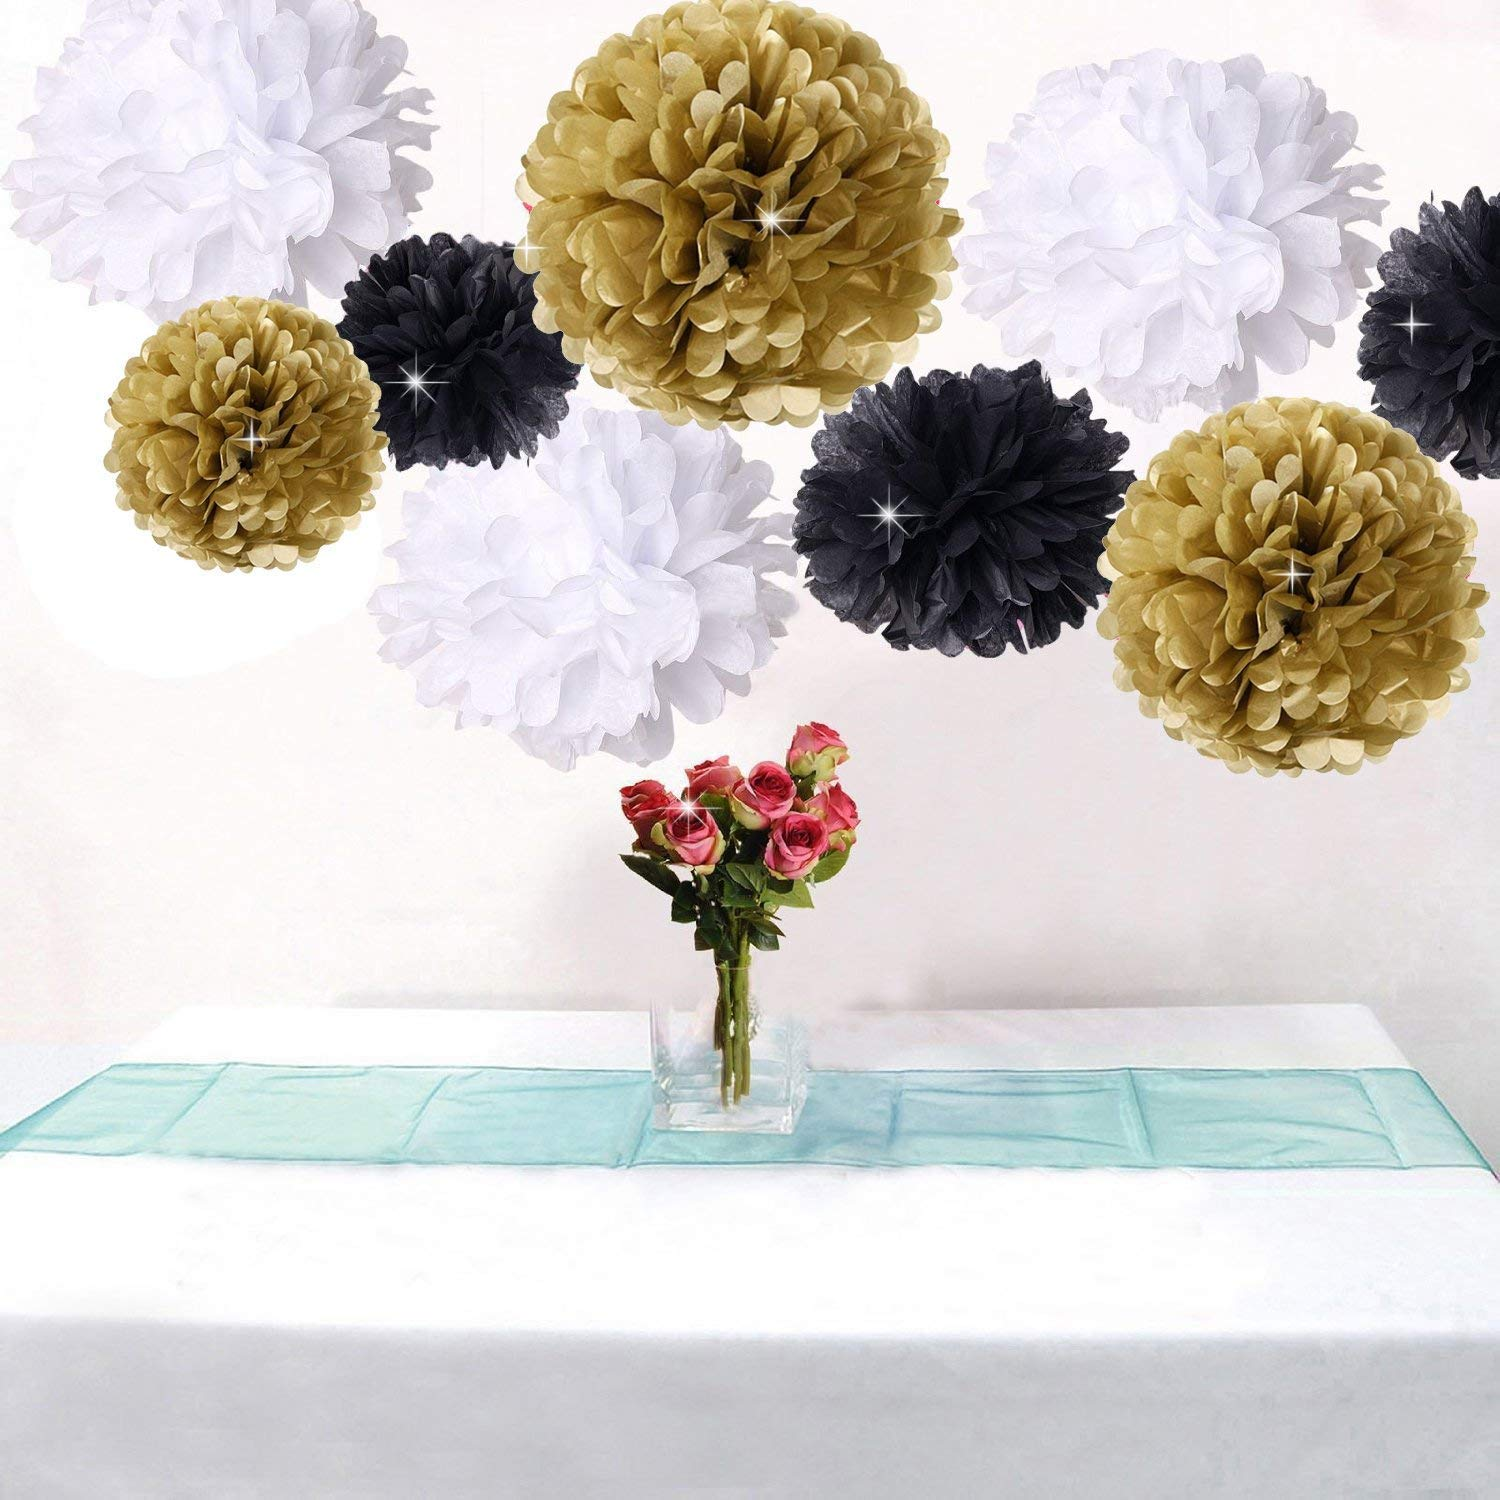 Pack of 18pcs Happy New Year Party Decorations Black White Gold Tissue Paper Pom Pom Paper Flower for Great Decorations/New Year's Eve Party/Birthday Decorations/Bridal Shower Decorations